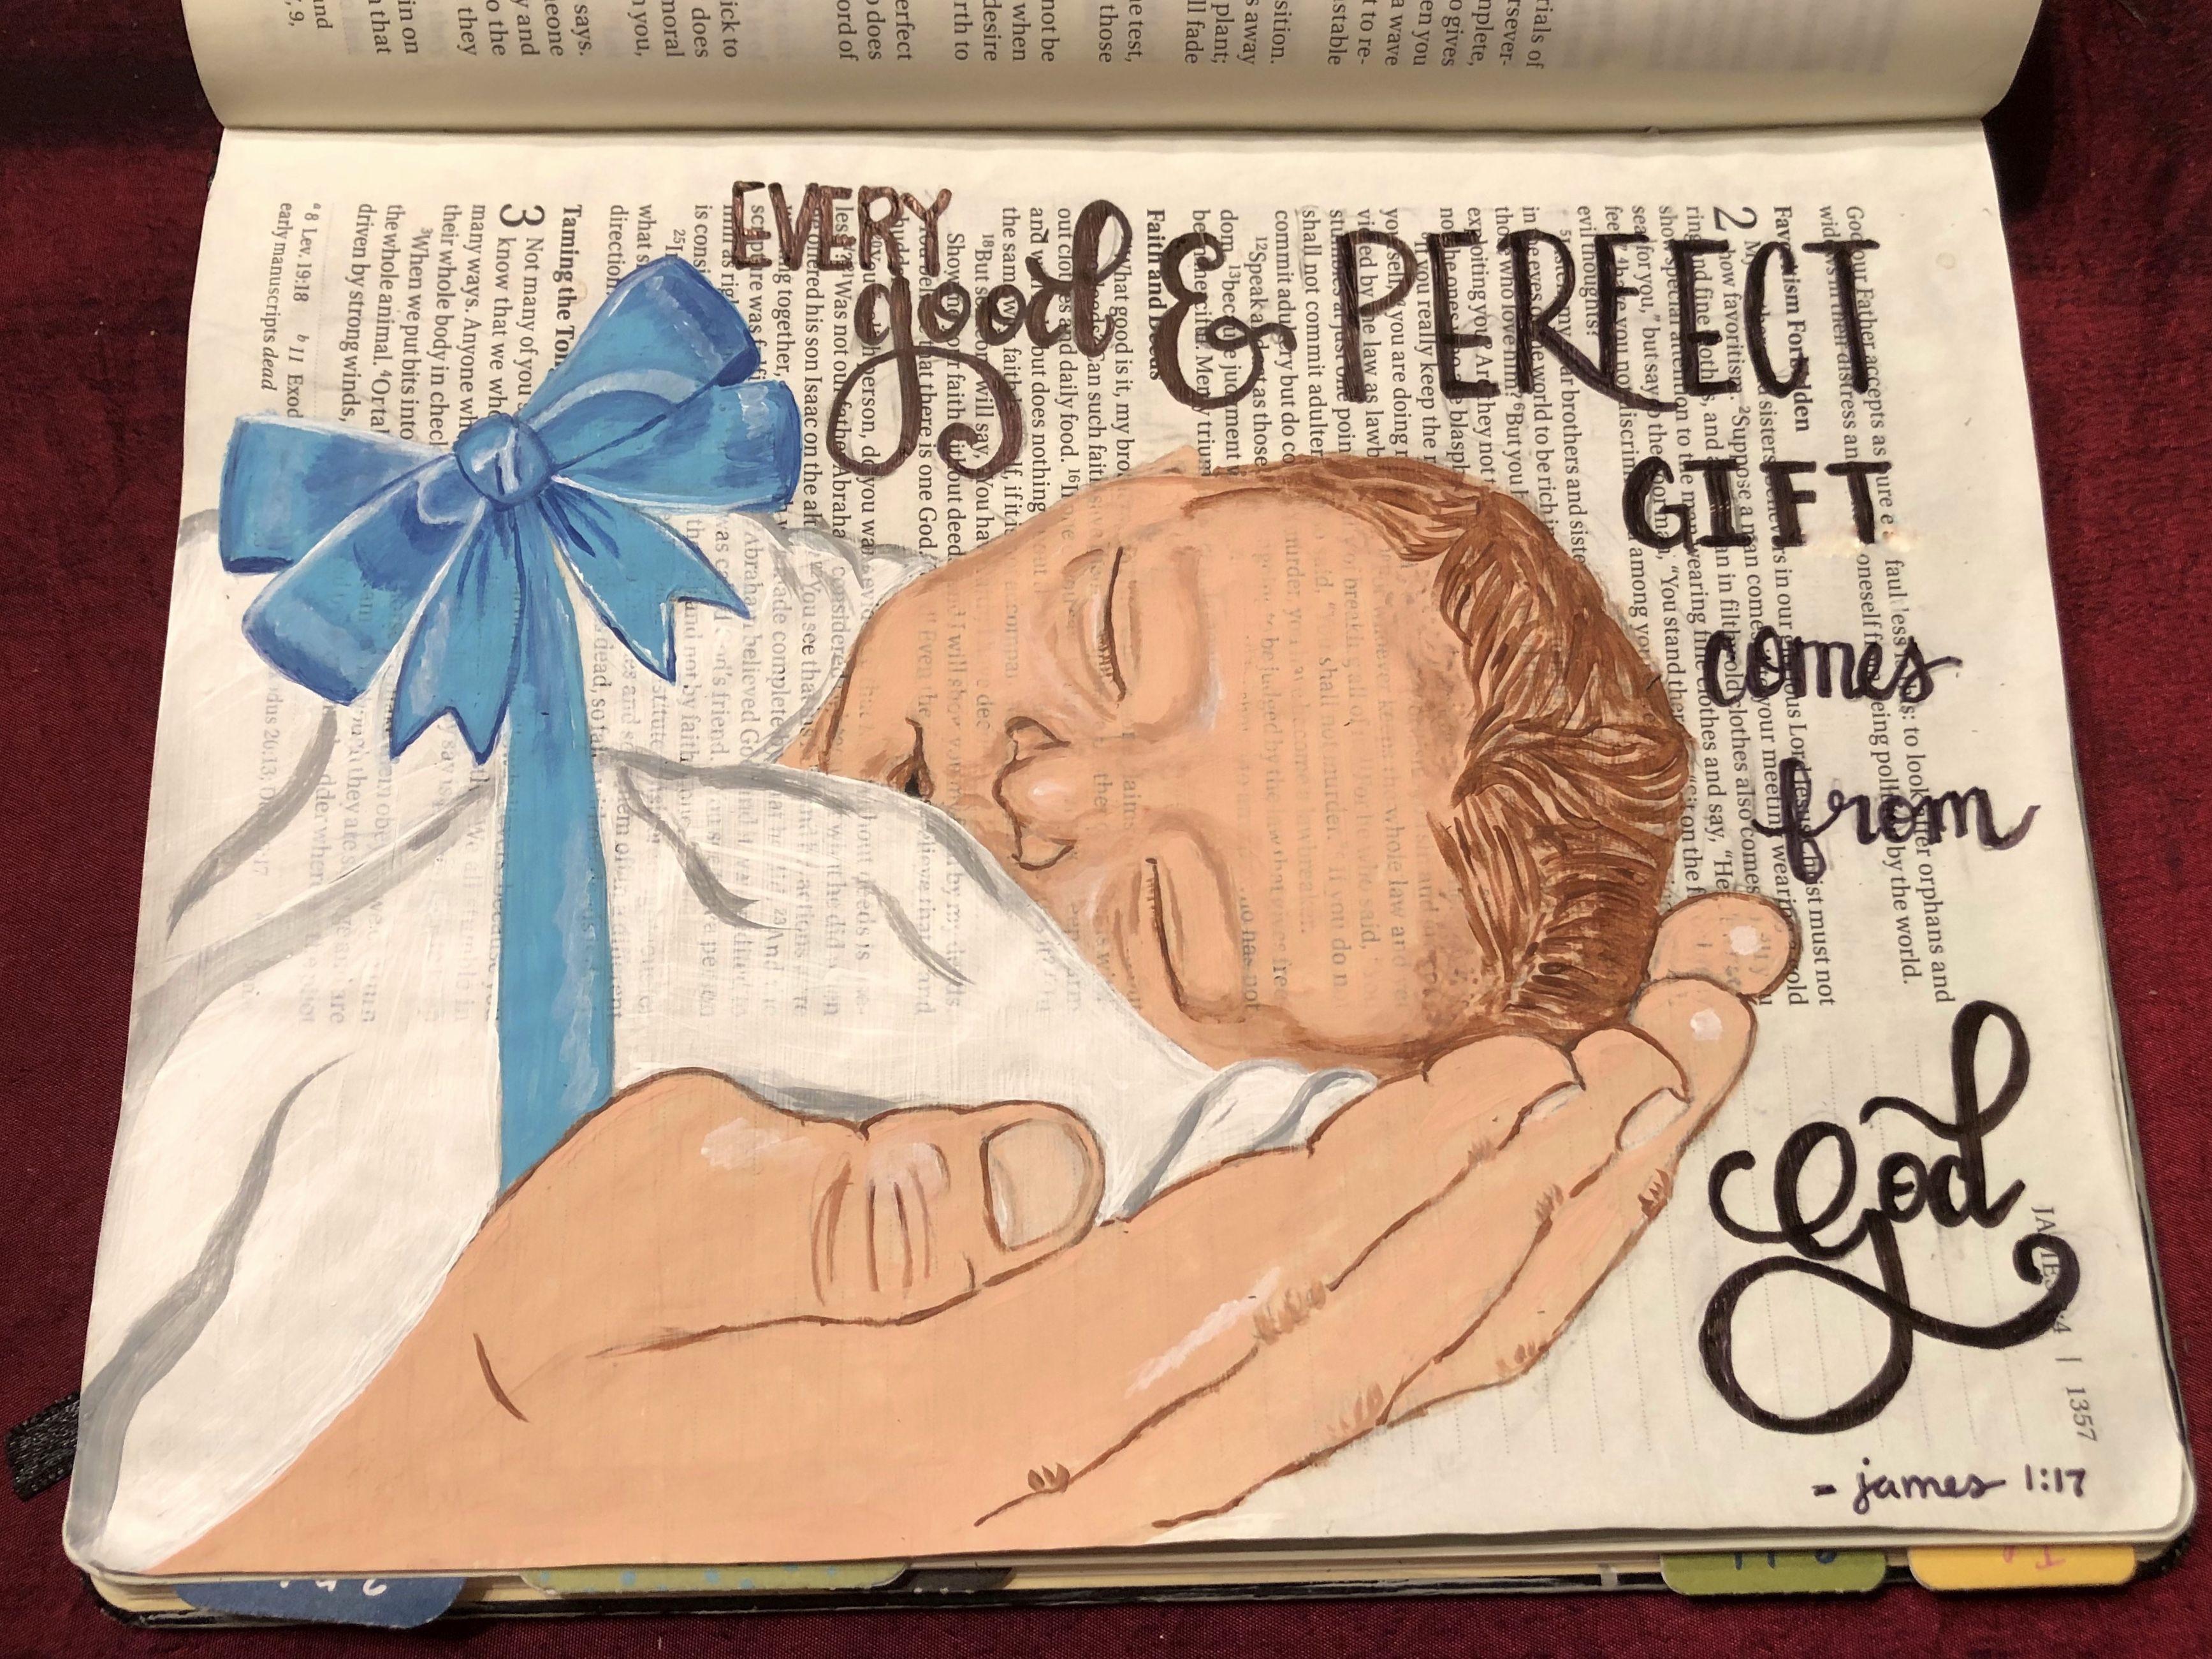 Every good and perfect gift comes from God. This is my son and my husbands  hand holding him...a perfect … | Bible drawing, Bible illustrations,  Christian journaling